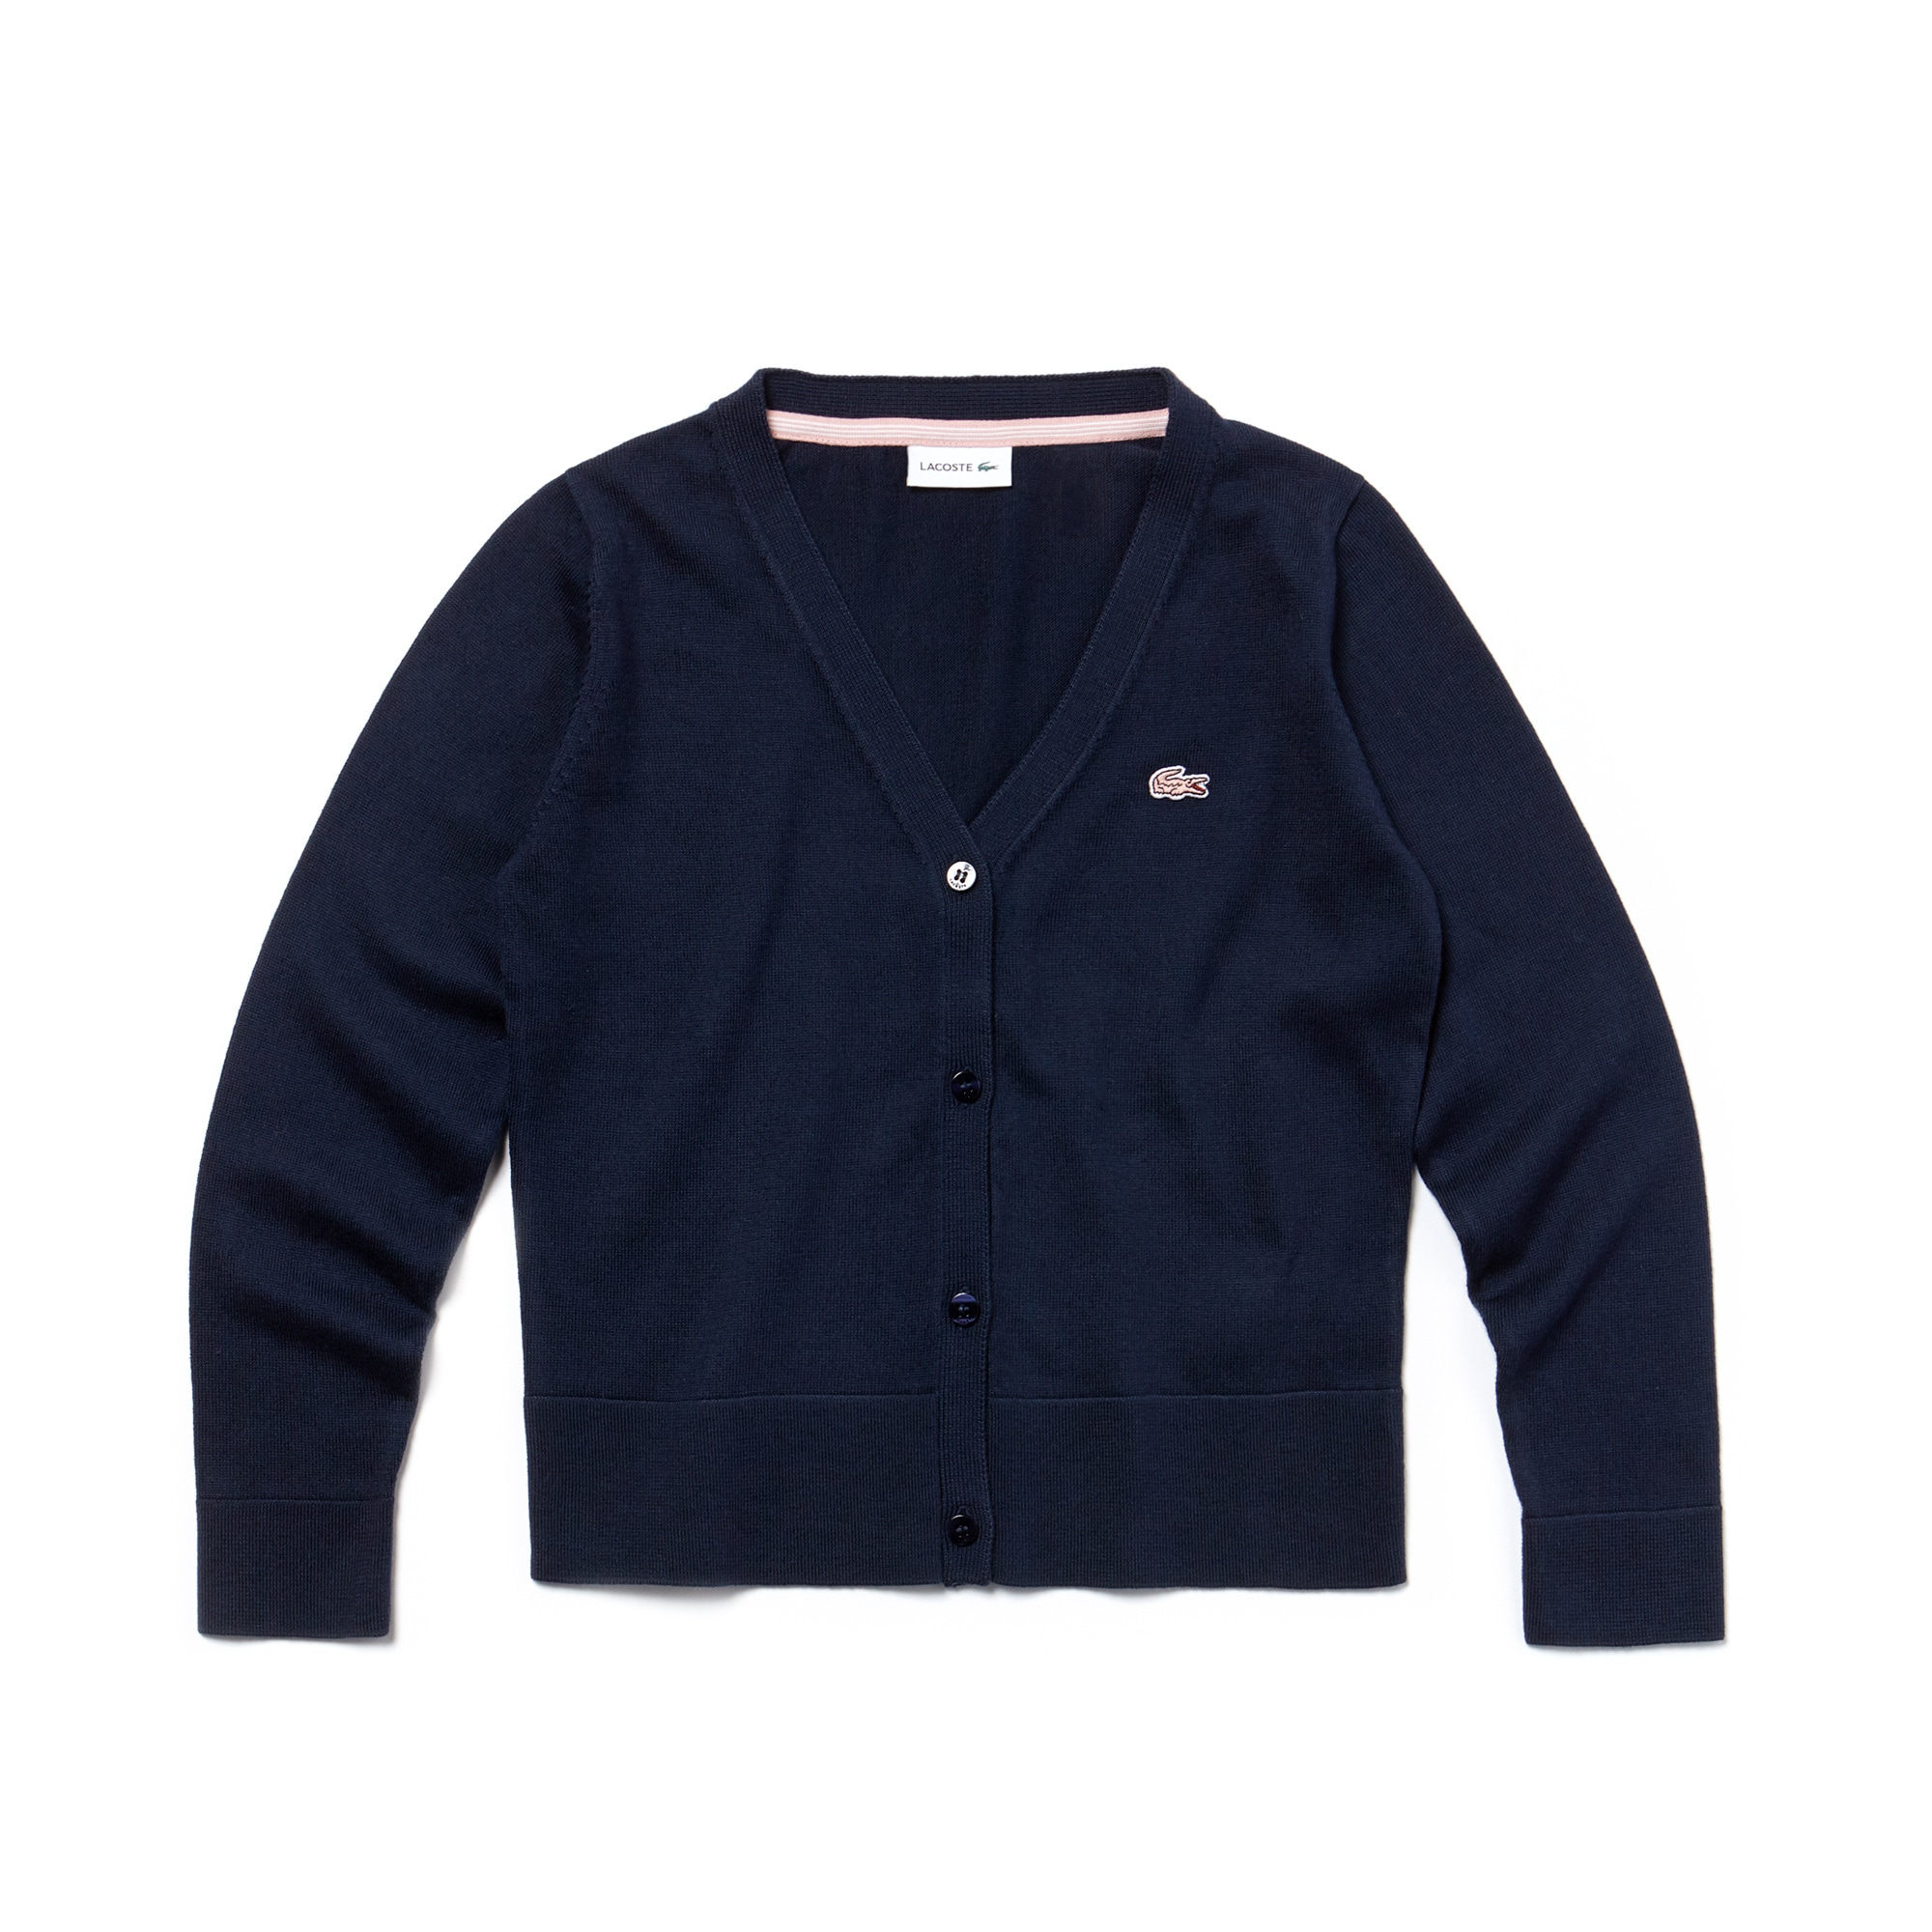 Girls' Cotton Jersey Cardigan